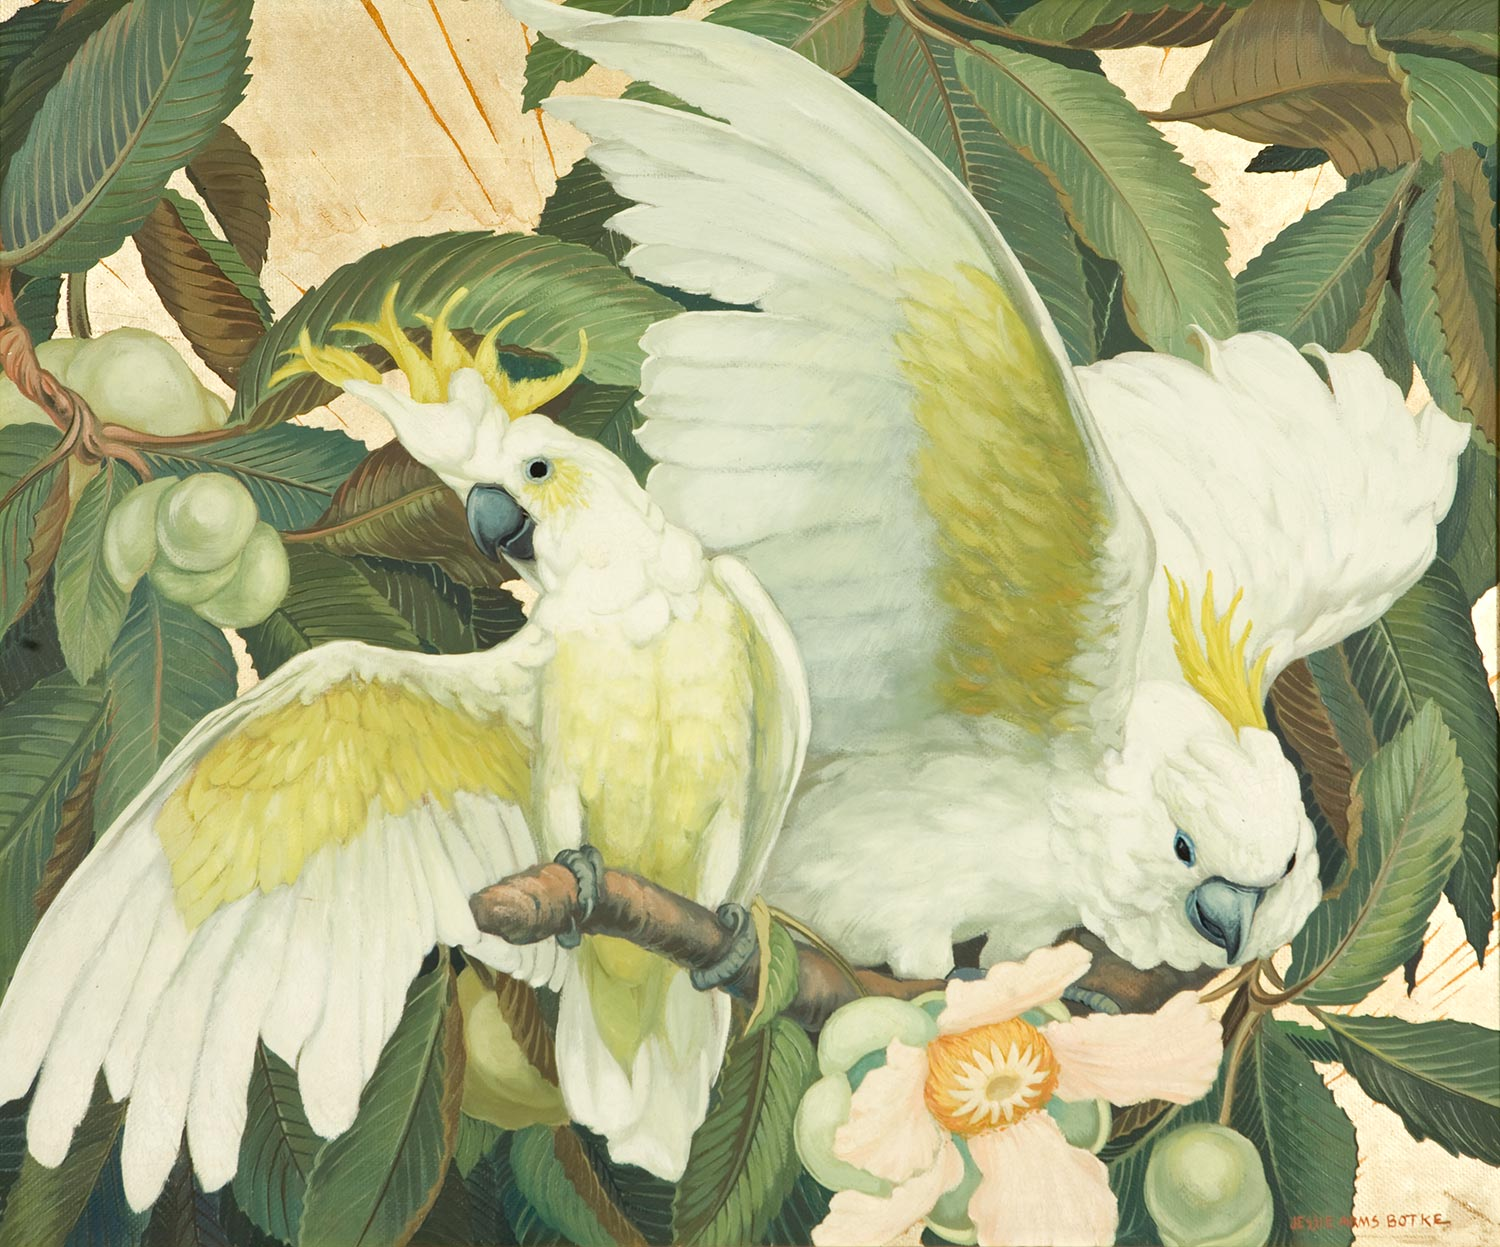 """Crested Cockatoos"" by Jessie Arms Botke"